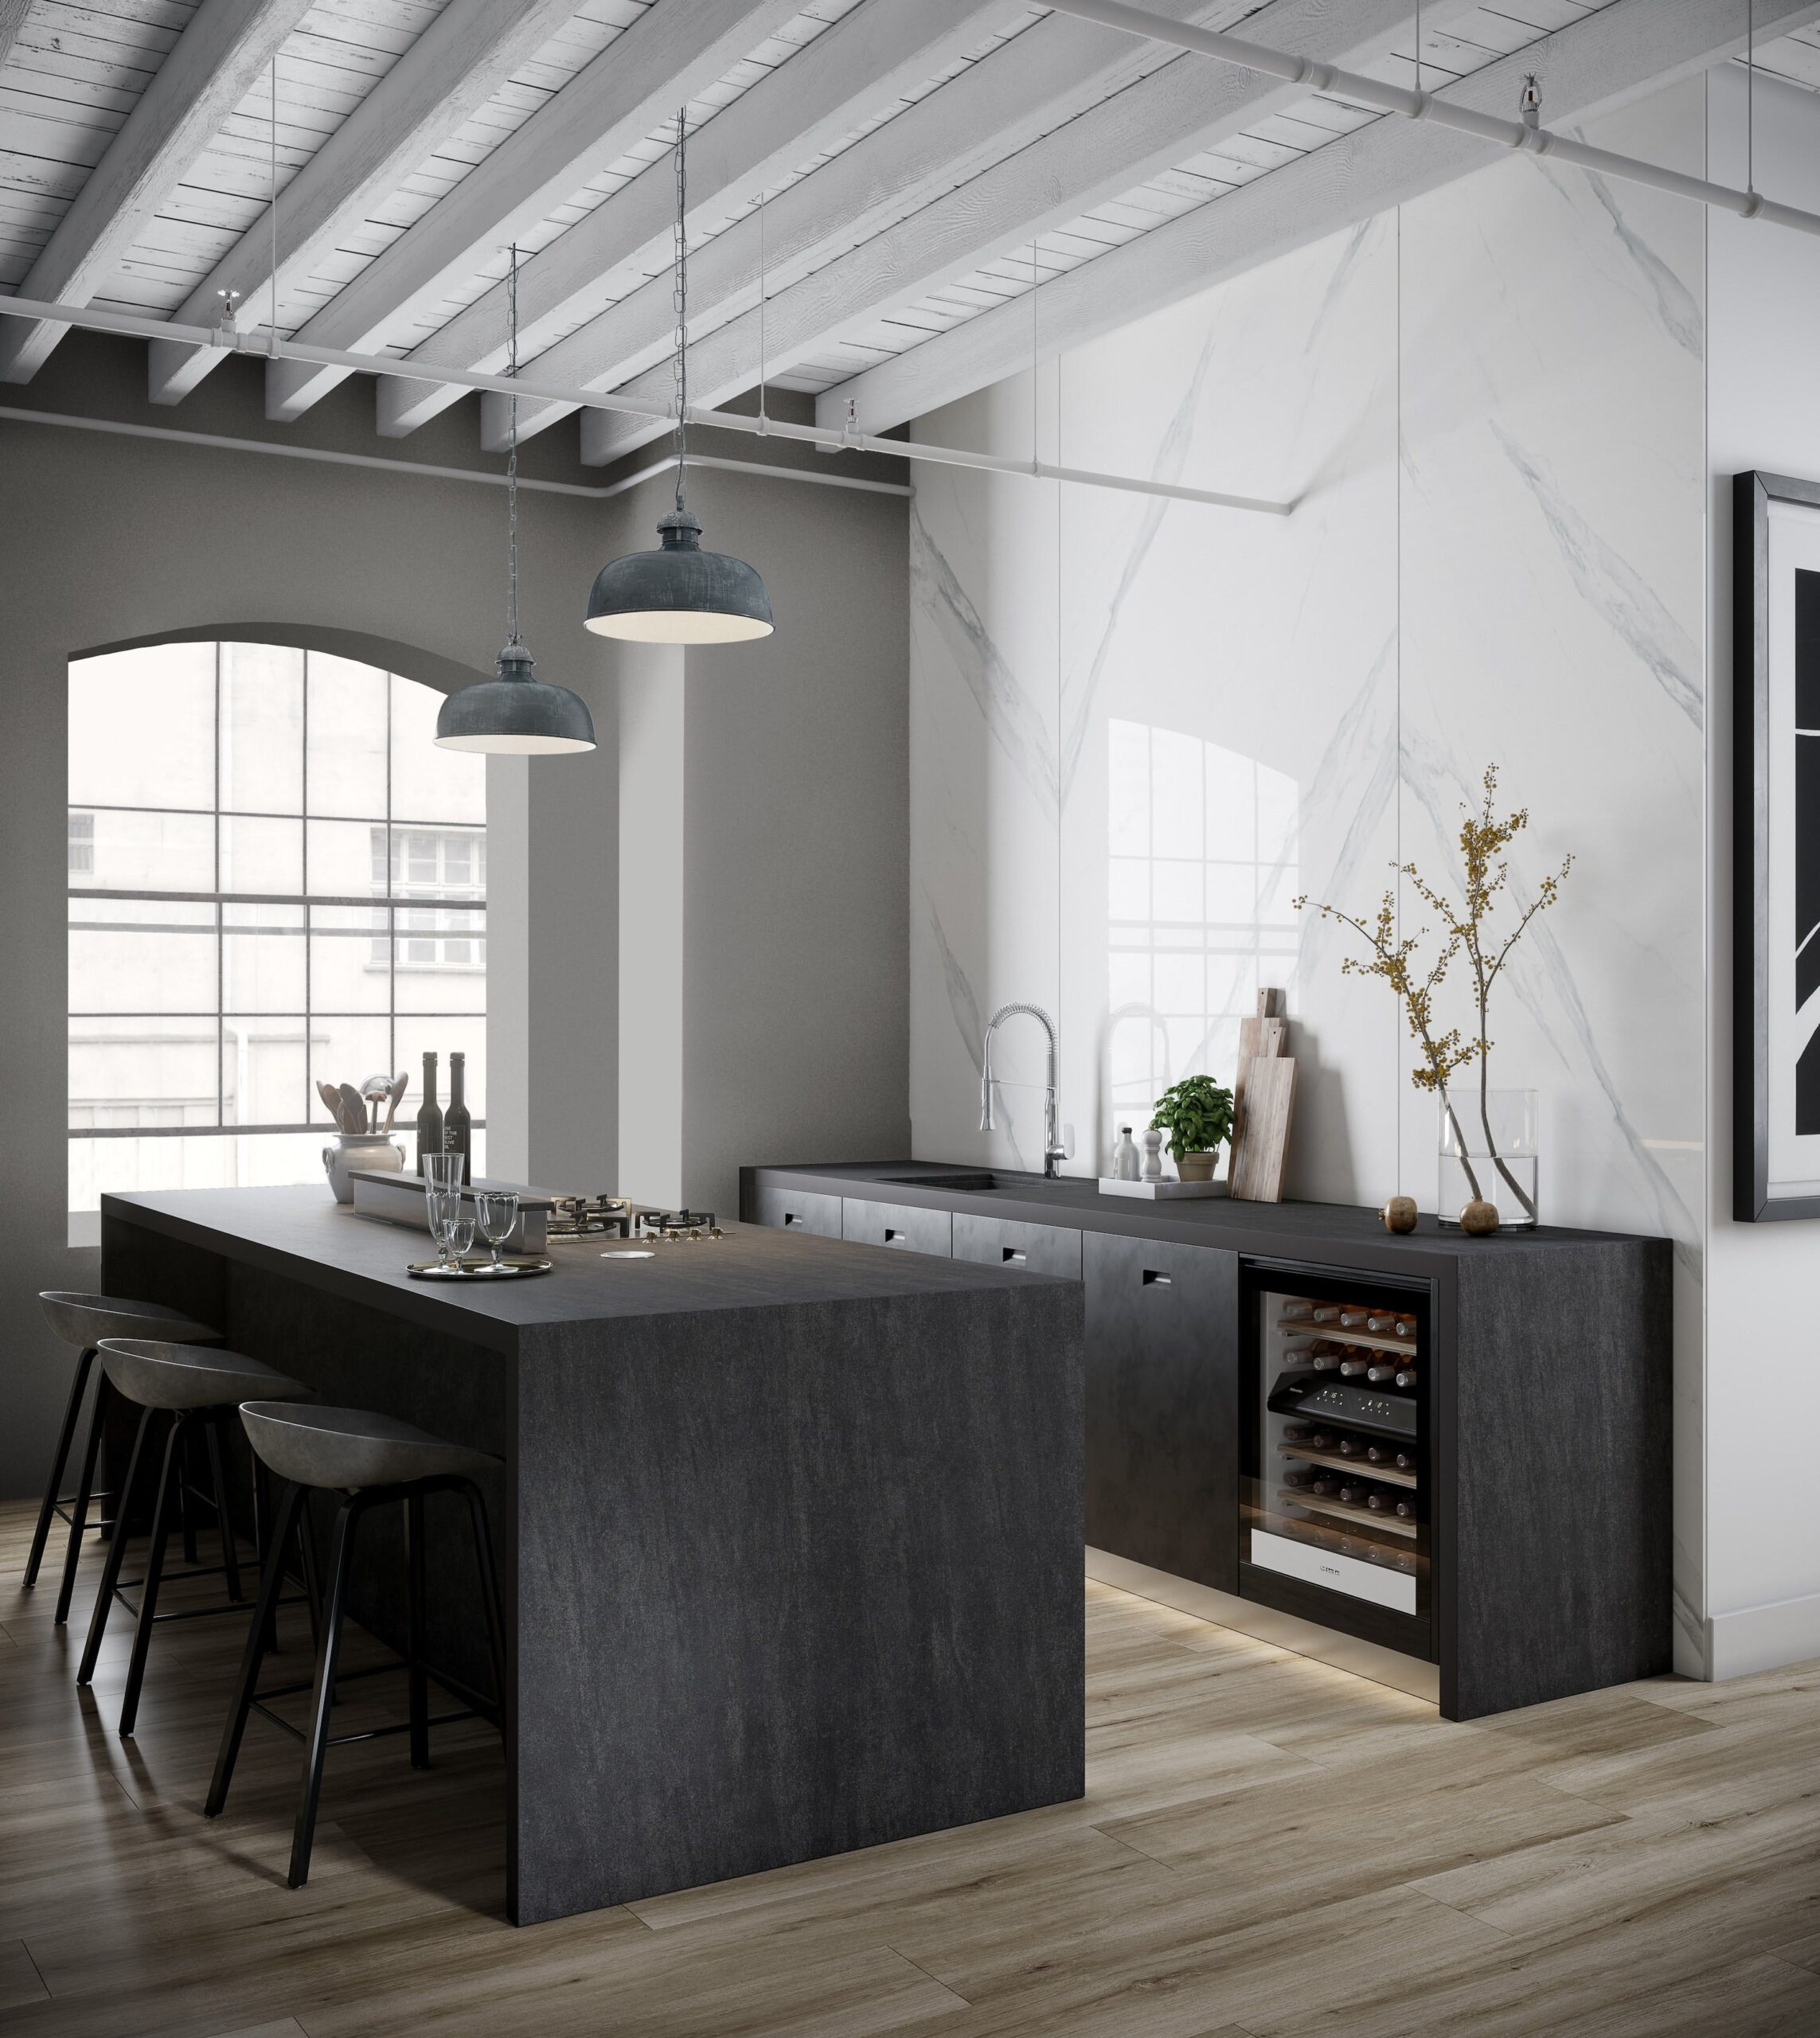 Image of Dekton Kitchen Bromo 3 2 1 scaled in The Top 7 Kitchen Makeover Trends - Cosentino